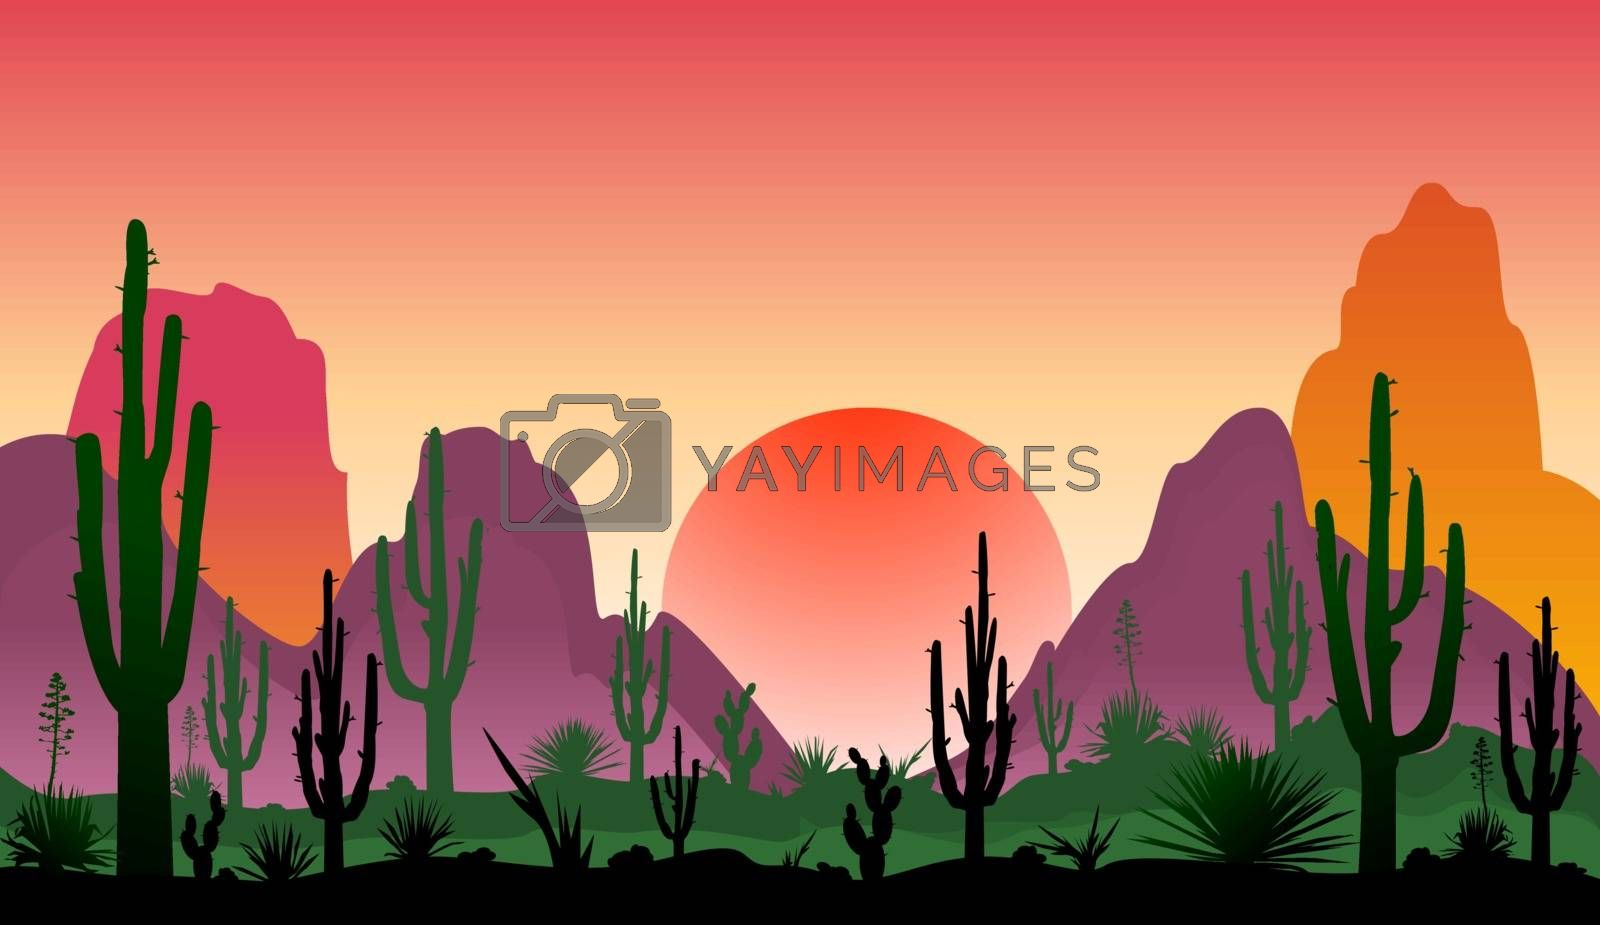 Landscape of rocky desert with cacti by liolle